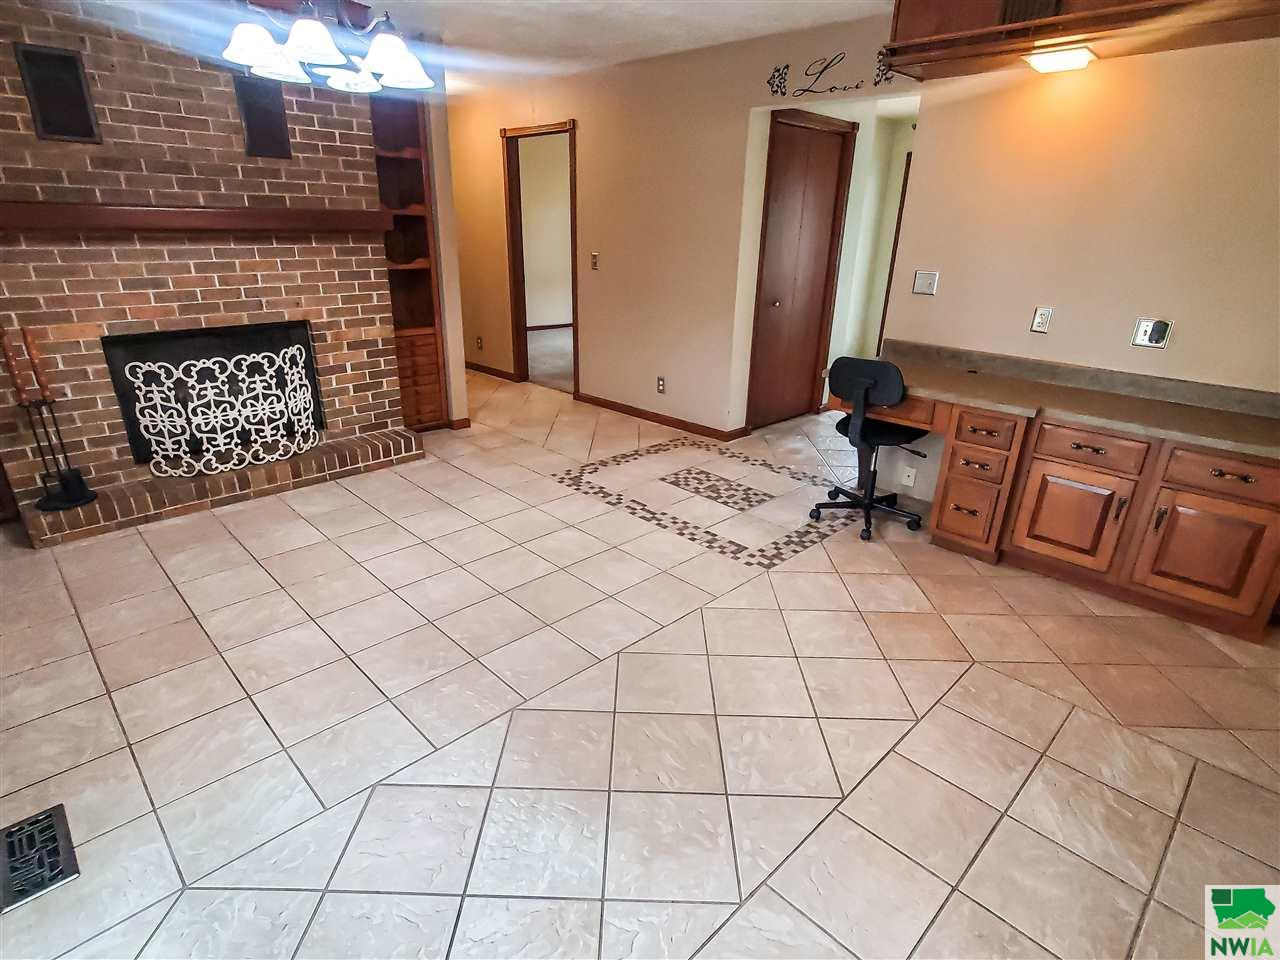 MLS# 814005 for Sale